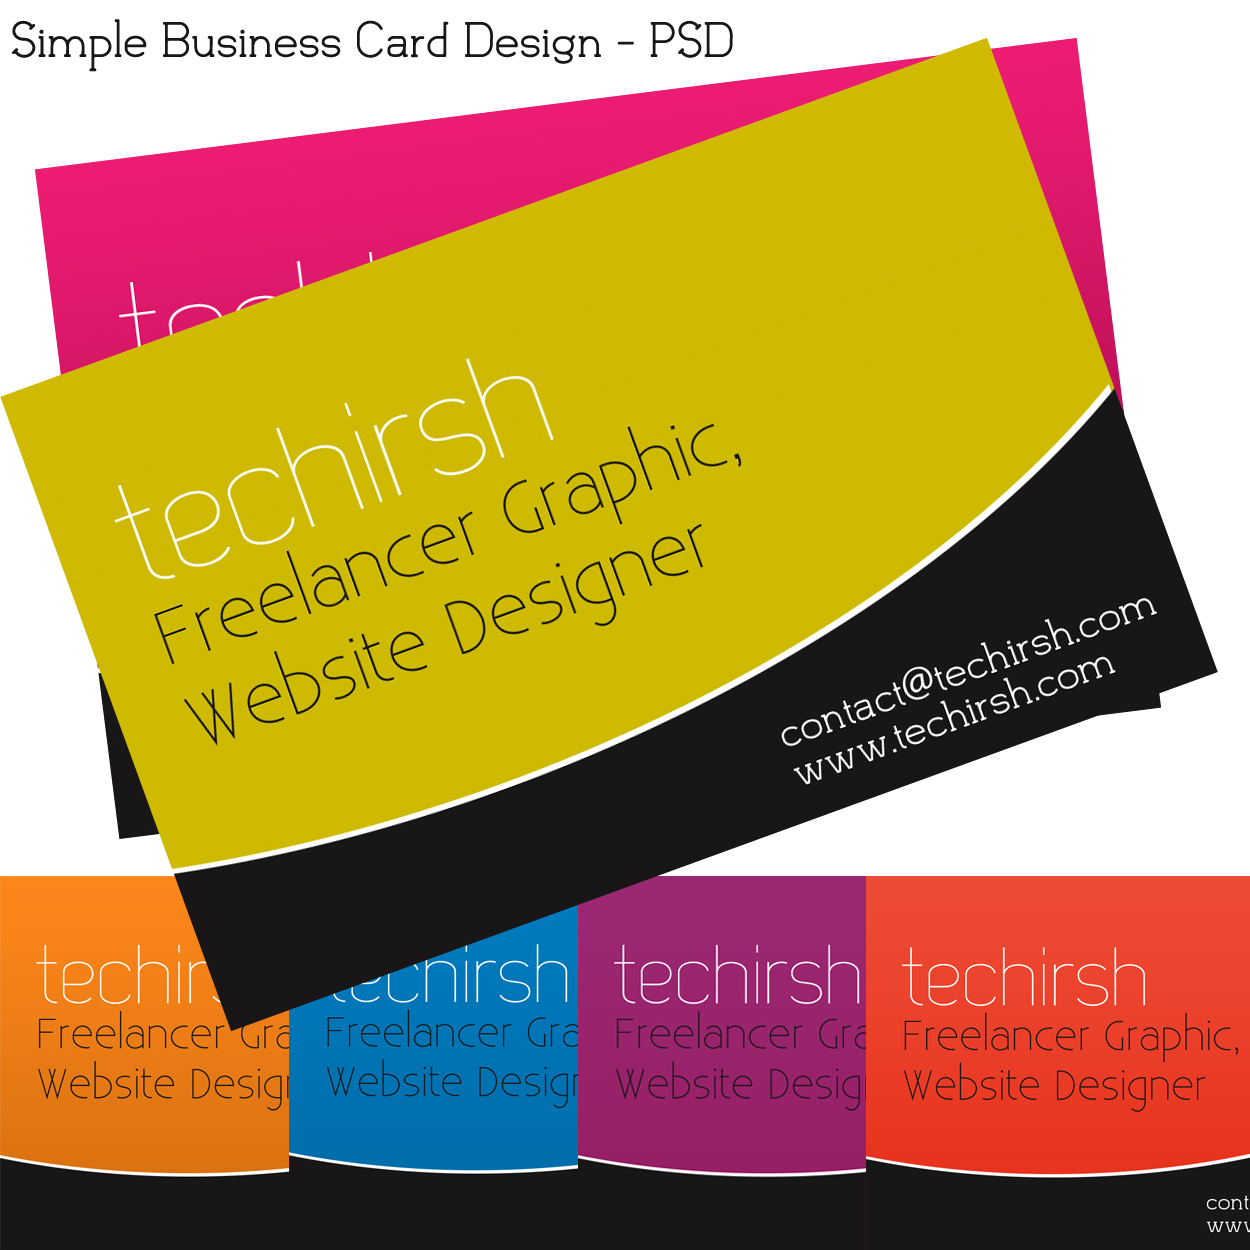 Download Free Multi color Business Card - PSD File BC1 : techirsh